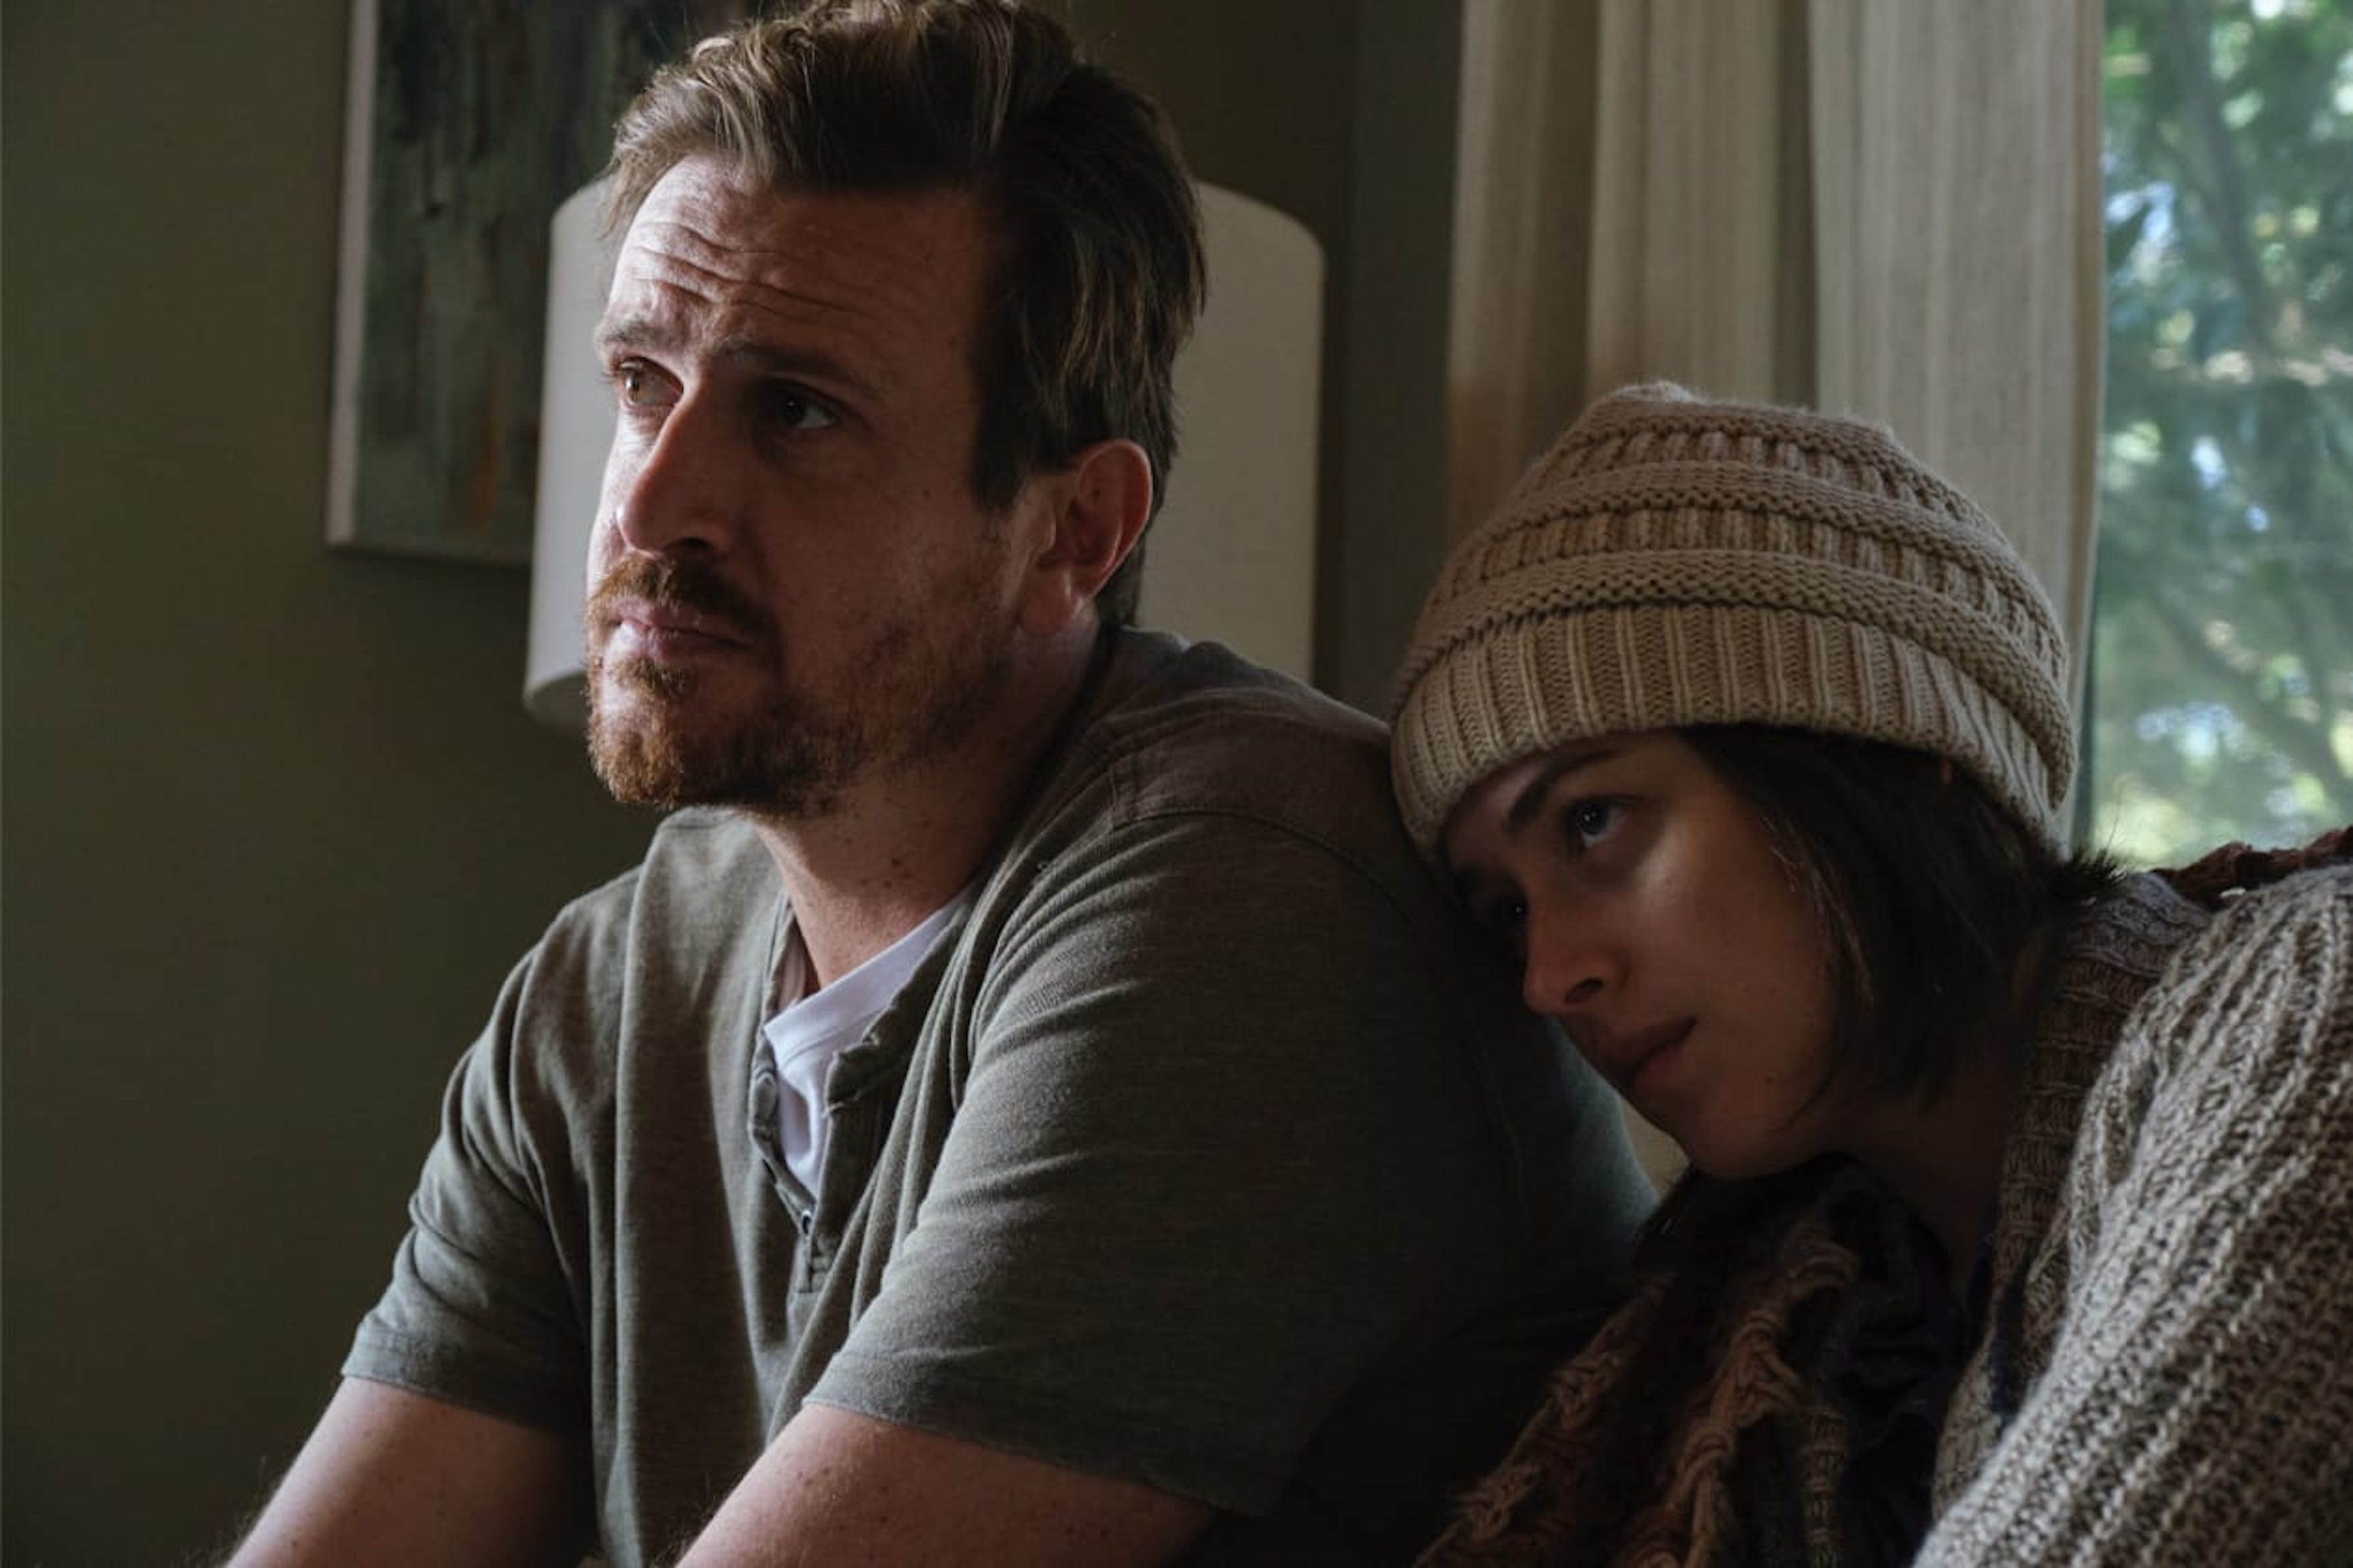 Our Friend  starring Jason Segel uses illness to get at grace of friendship